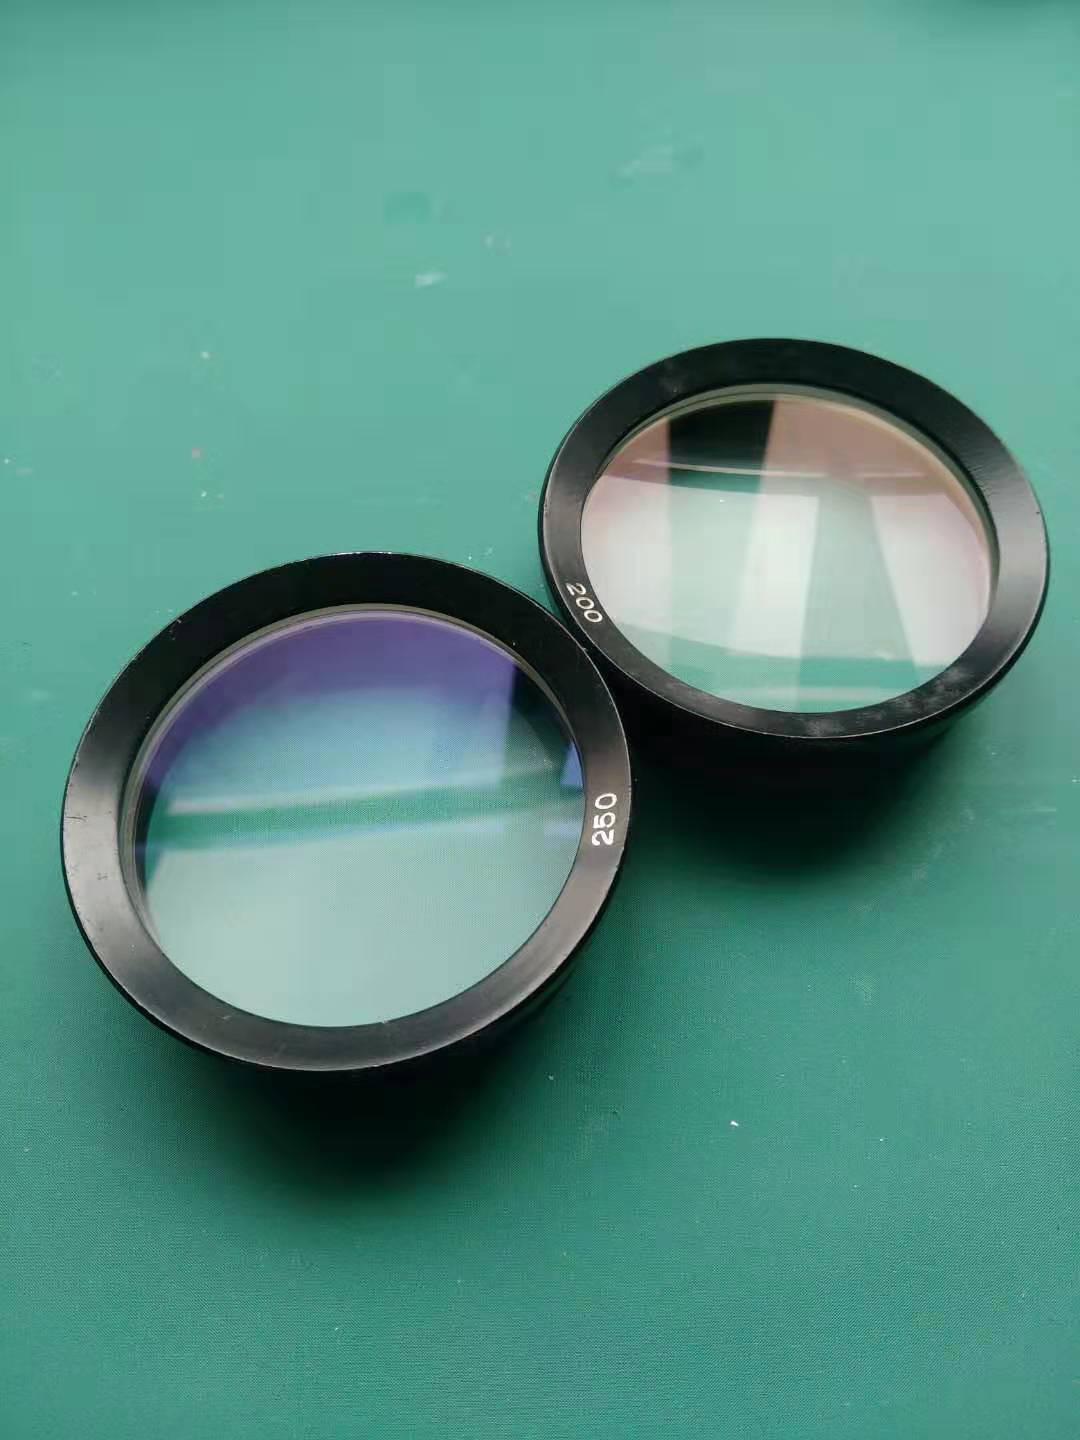 [OL-250] 250mm Objective Lens for Surgical Microscopes